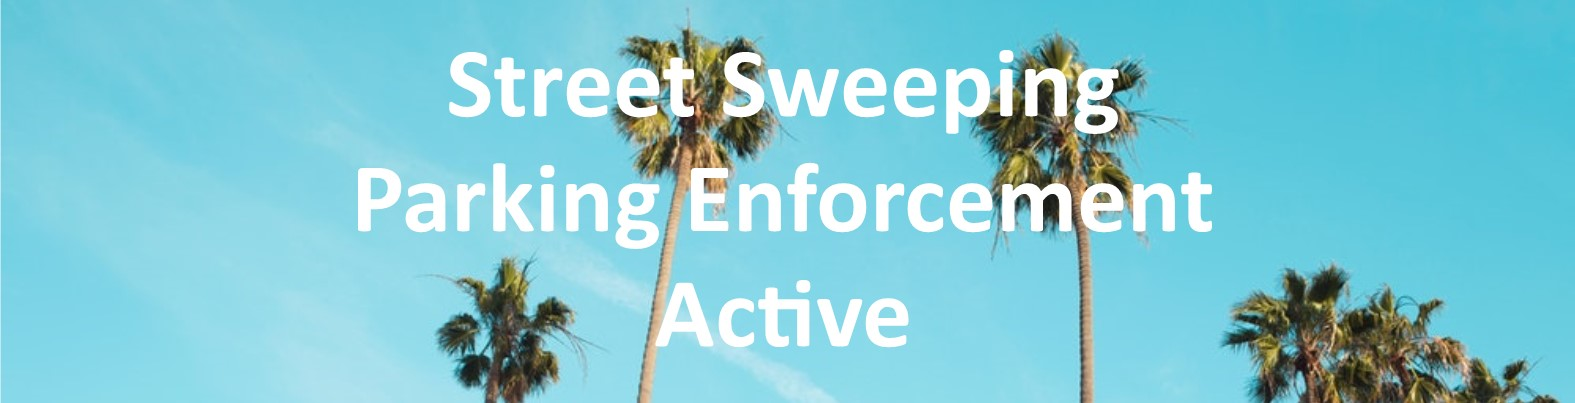 Street Sweeping Enforcement banner